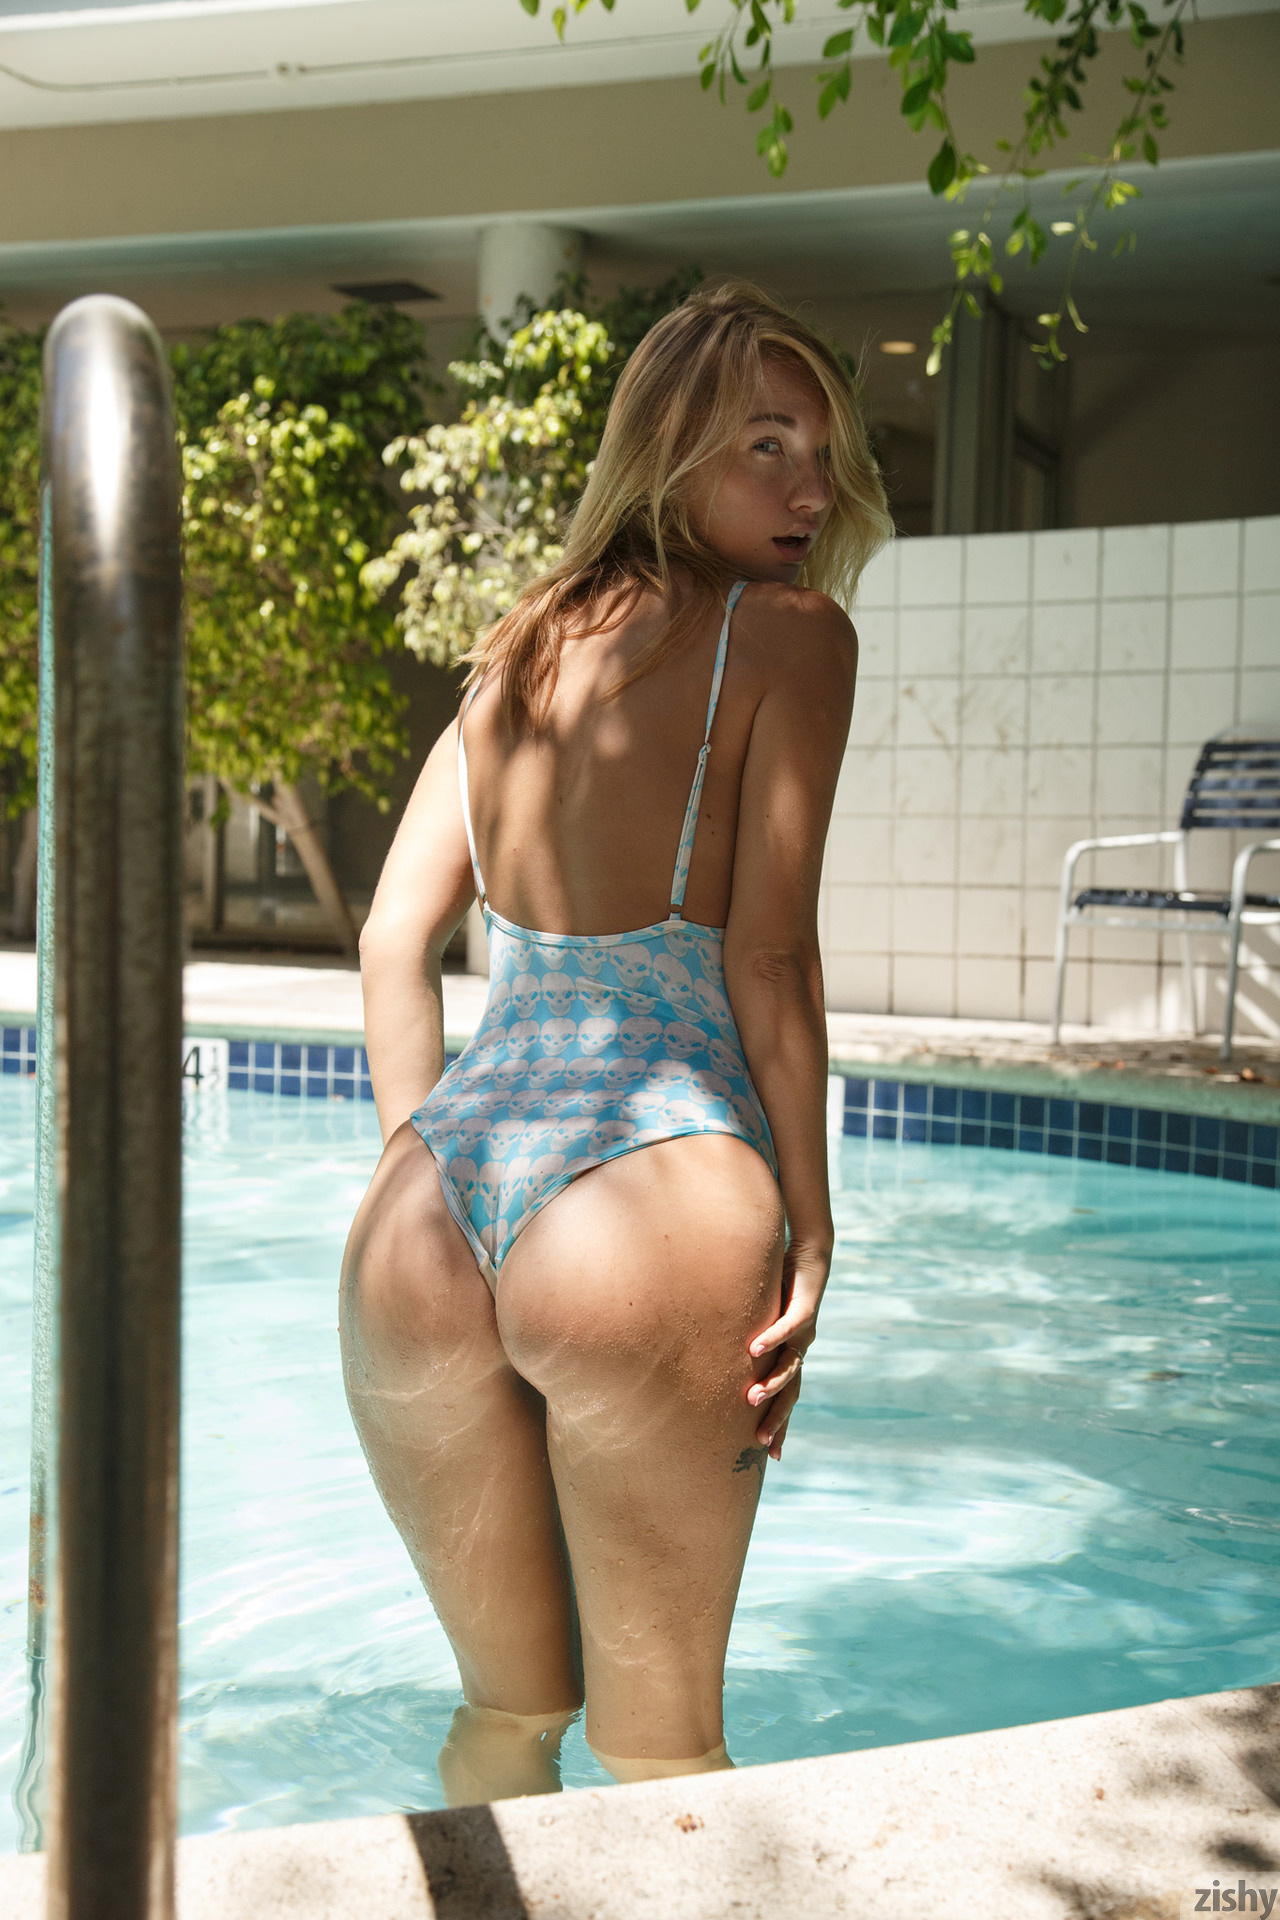 Lily Ivy Poolside Feminism 0063